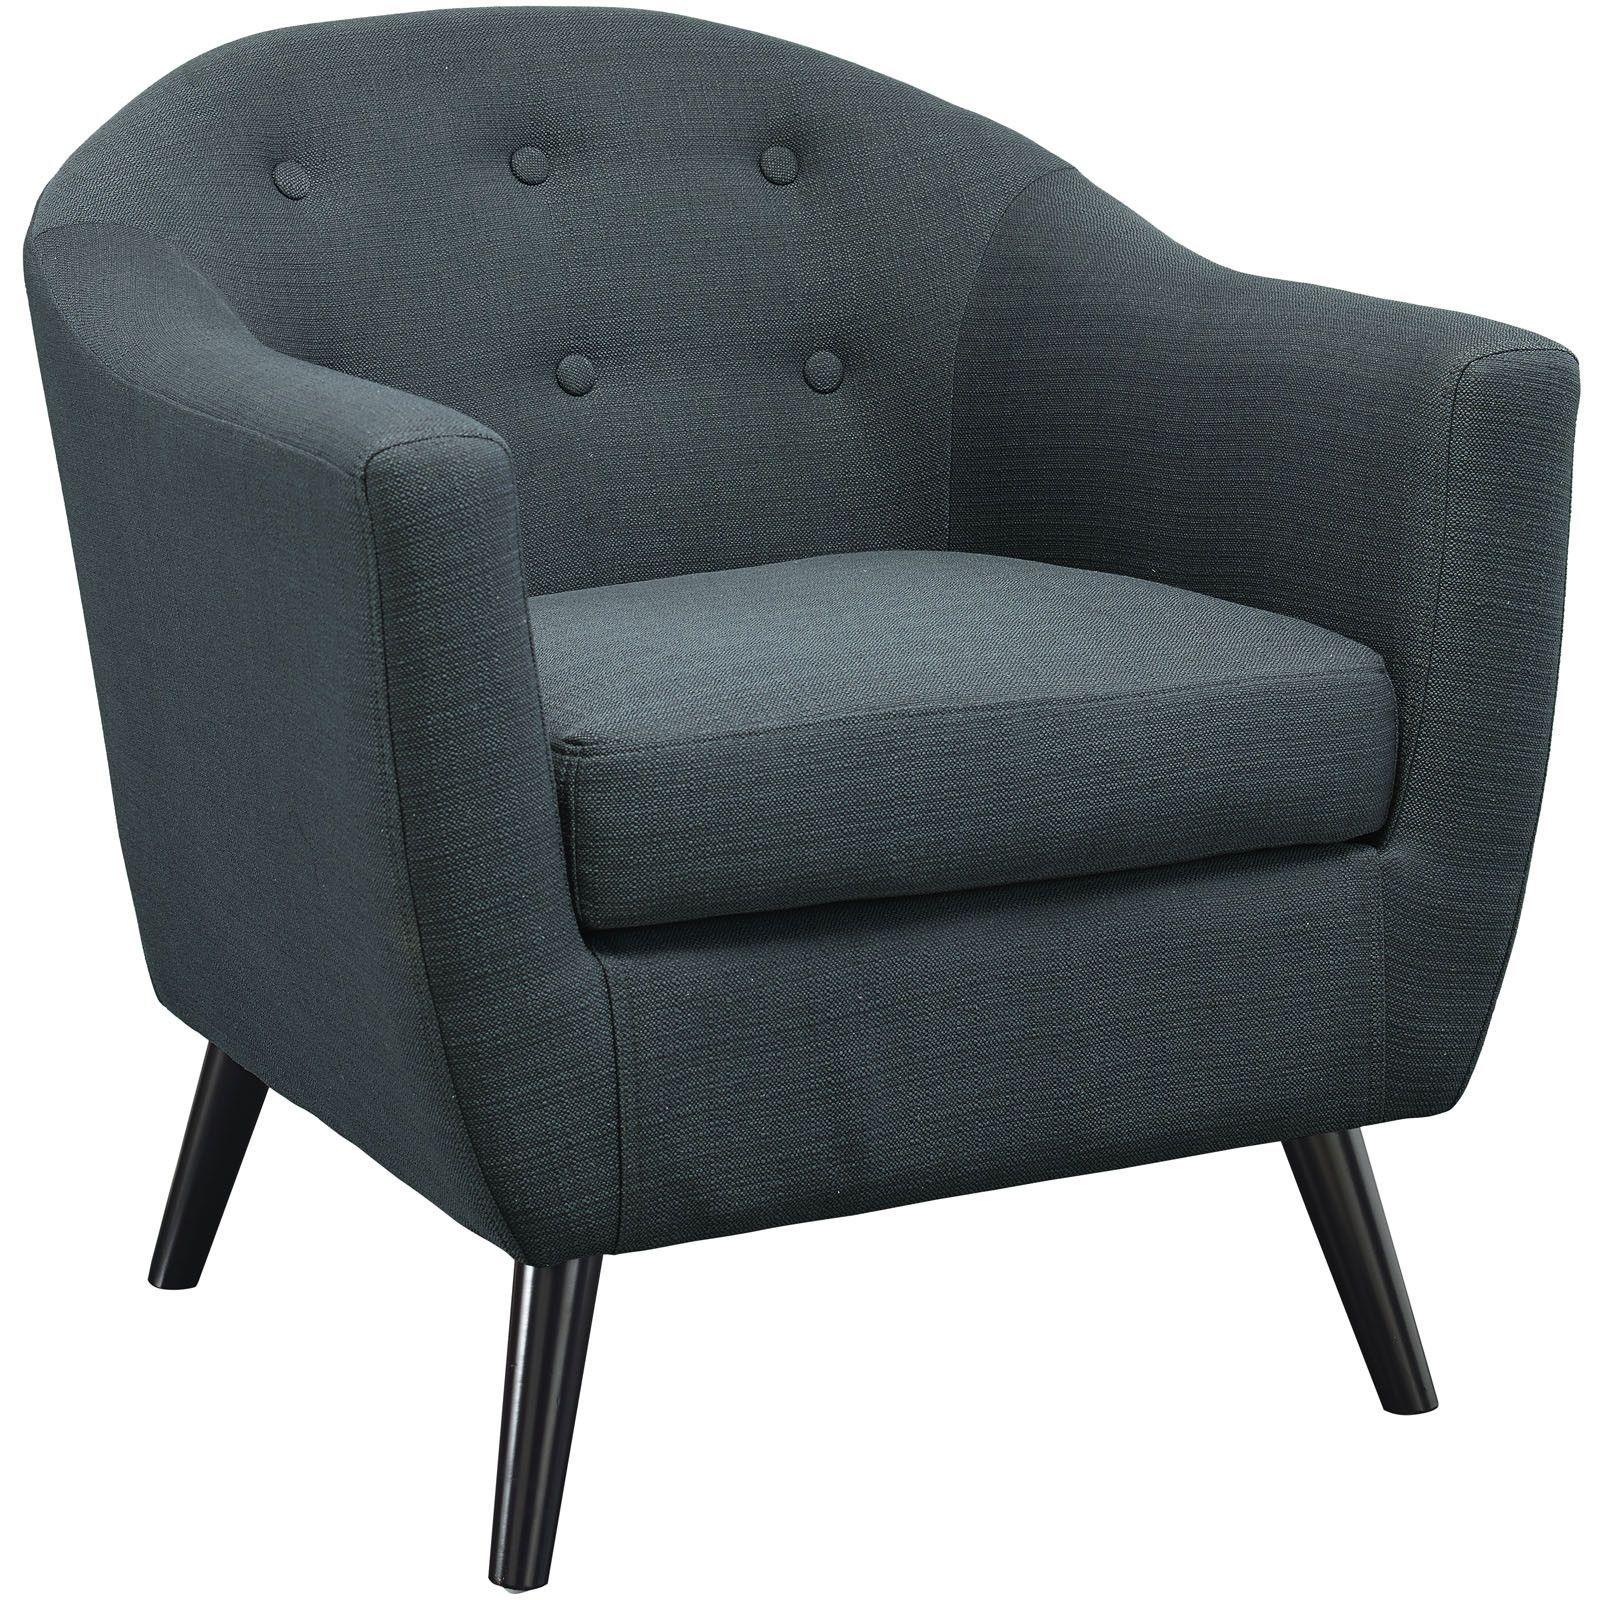 Modway Furniture Wit Armchair EEI 1389